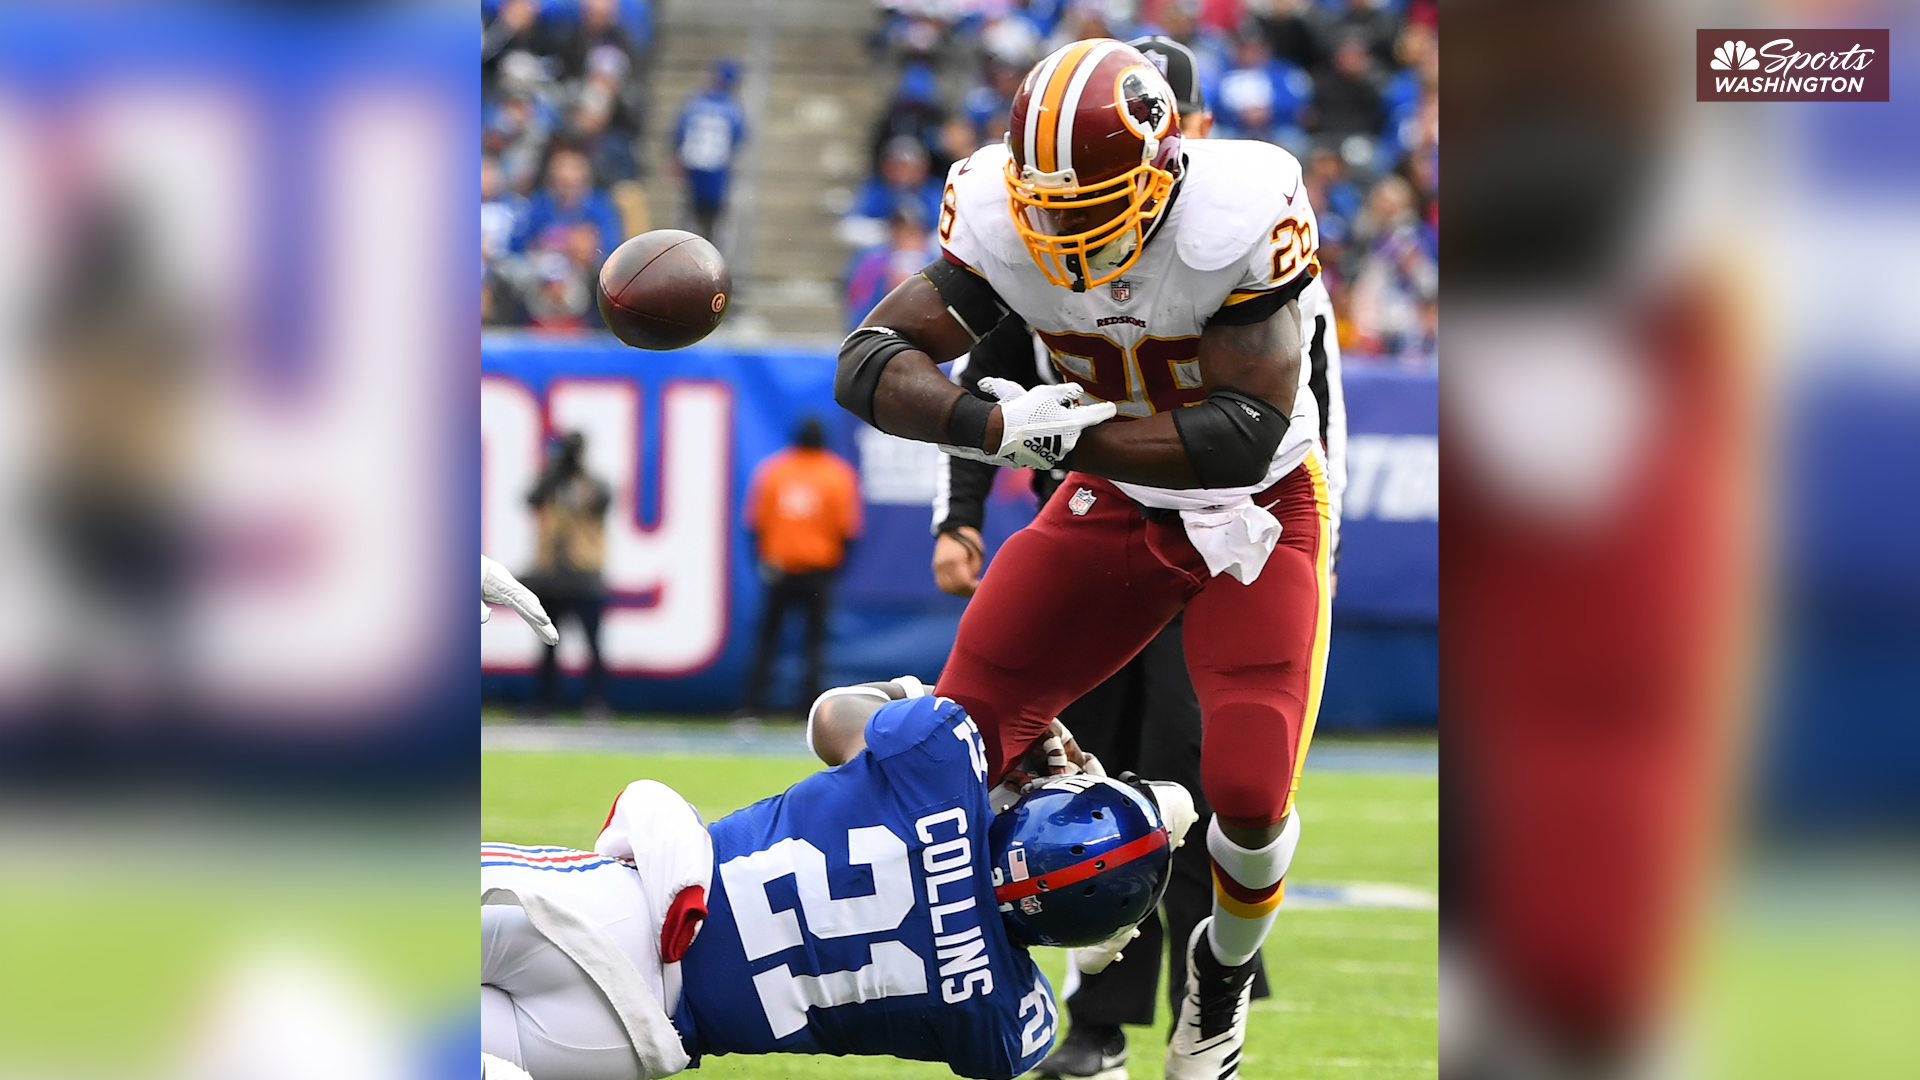 Landon Collins recounts the first time he tried to tackle Adrian Peterson